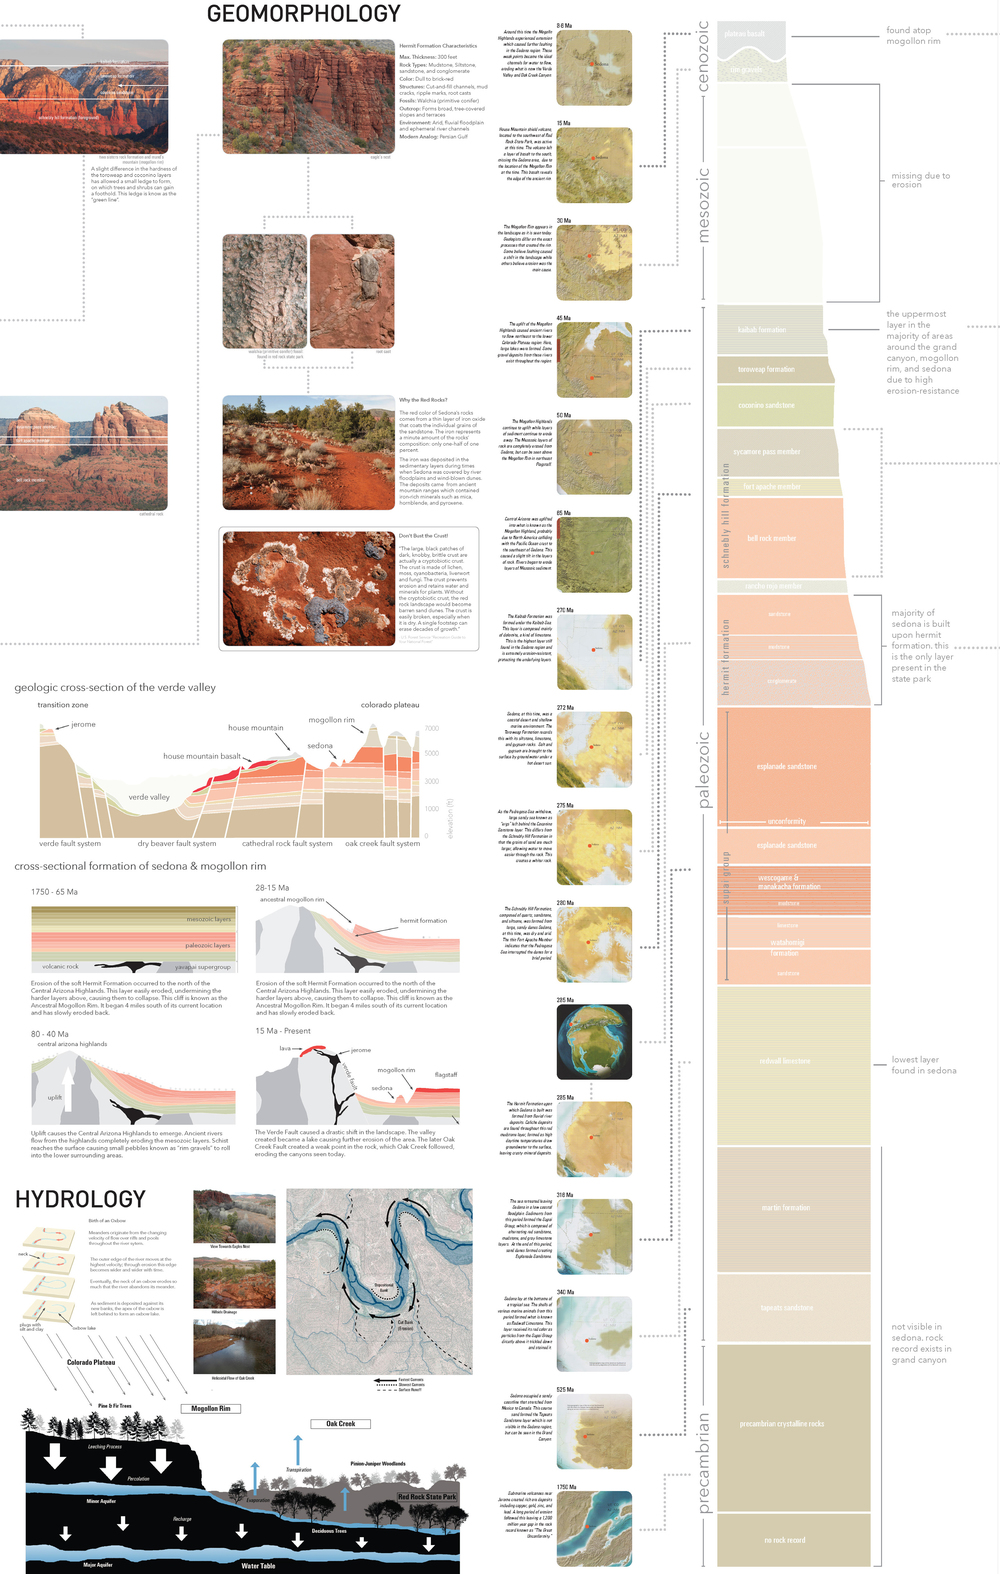 In this study of Red Rocks State Park in Arizona, the geomorphology and hydrology dramatically impact how the landscape functions.  Also millions of years of history are exposed, and maps can now show where the location of the site was at any point in history along with the conditions of the planet at the time.  (click image for lightbox view)